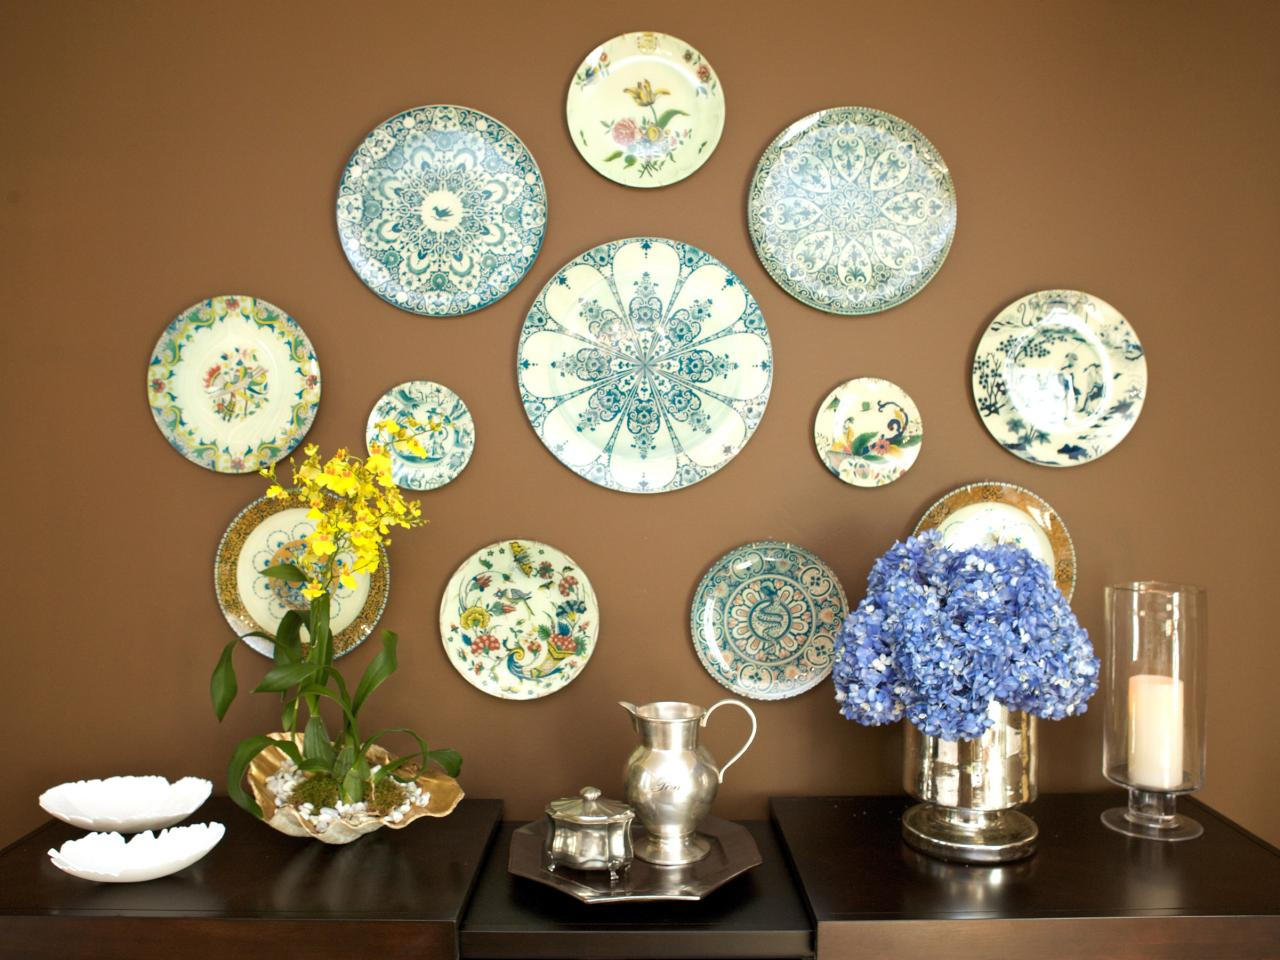 HHILO112_High-Dining-Room-Plate-Display_s4x3.jpg.rend.hgtvcom.1280.960